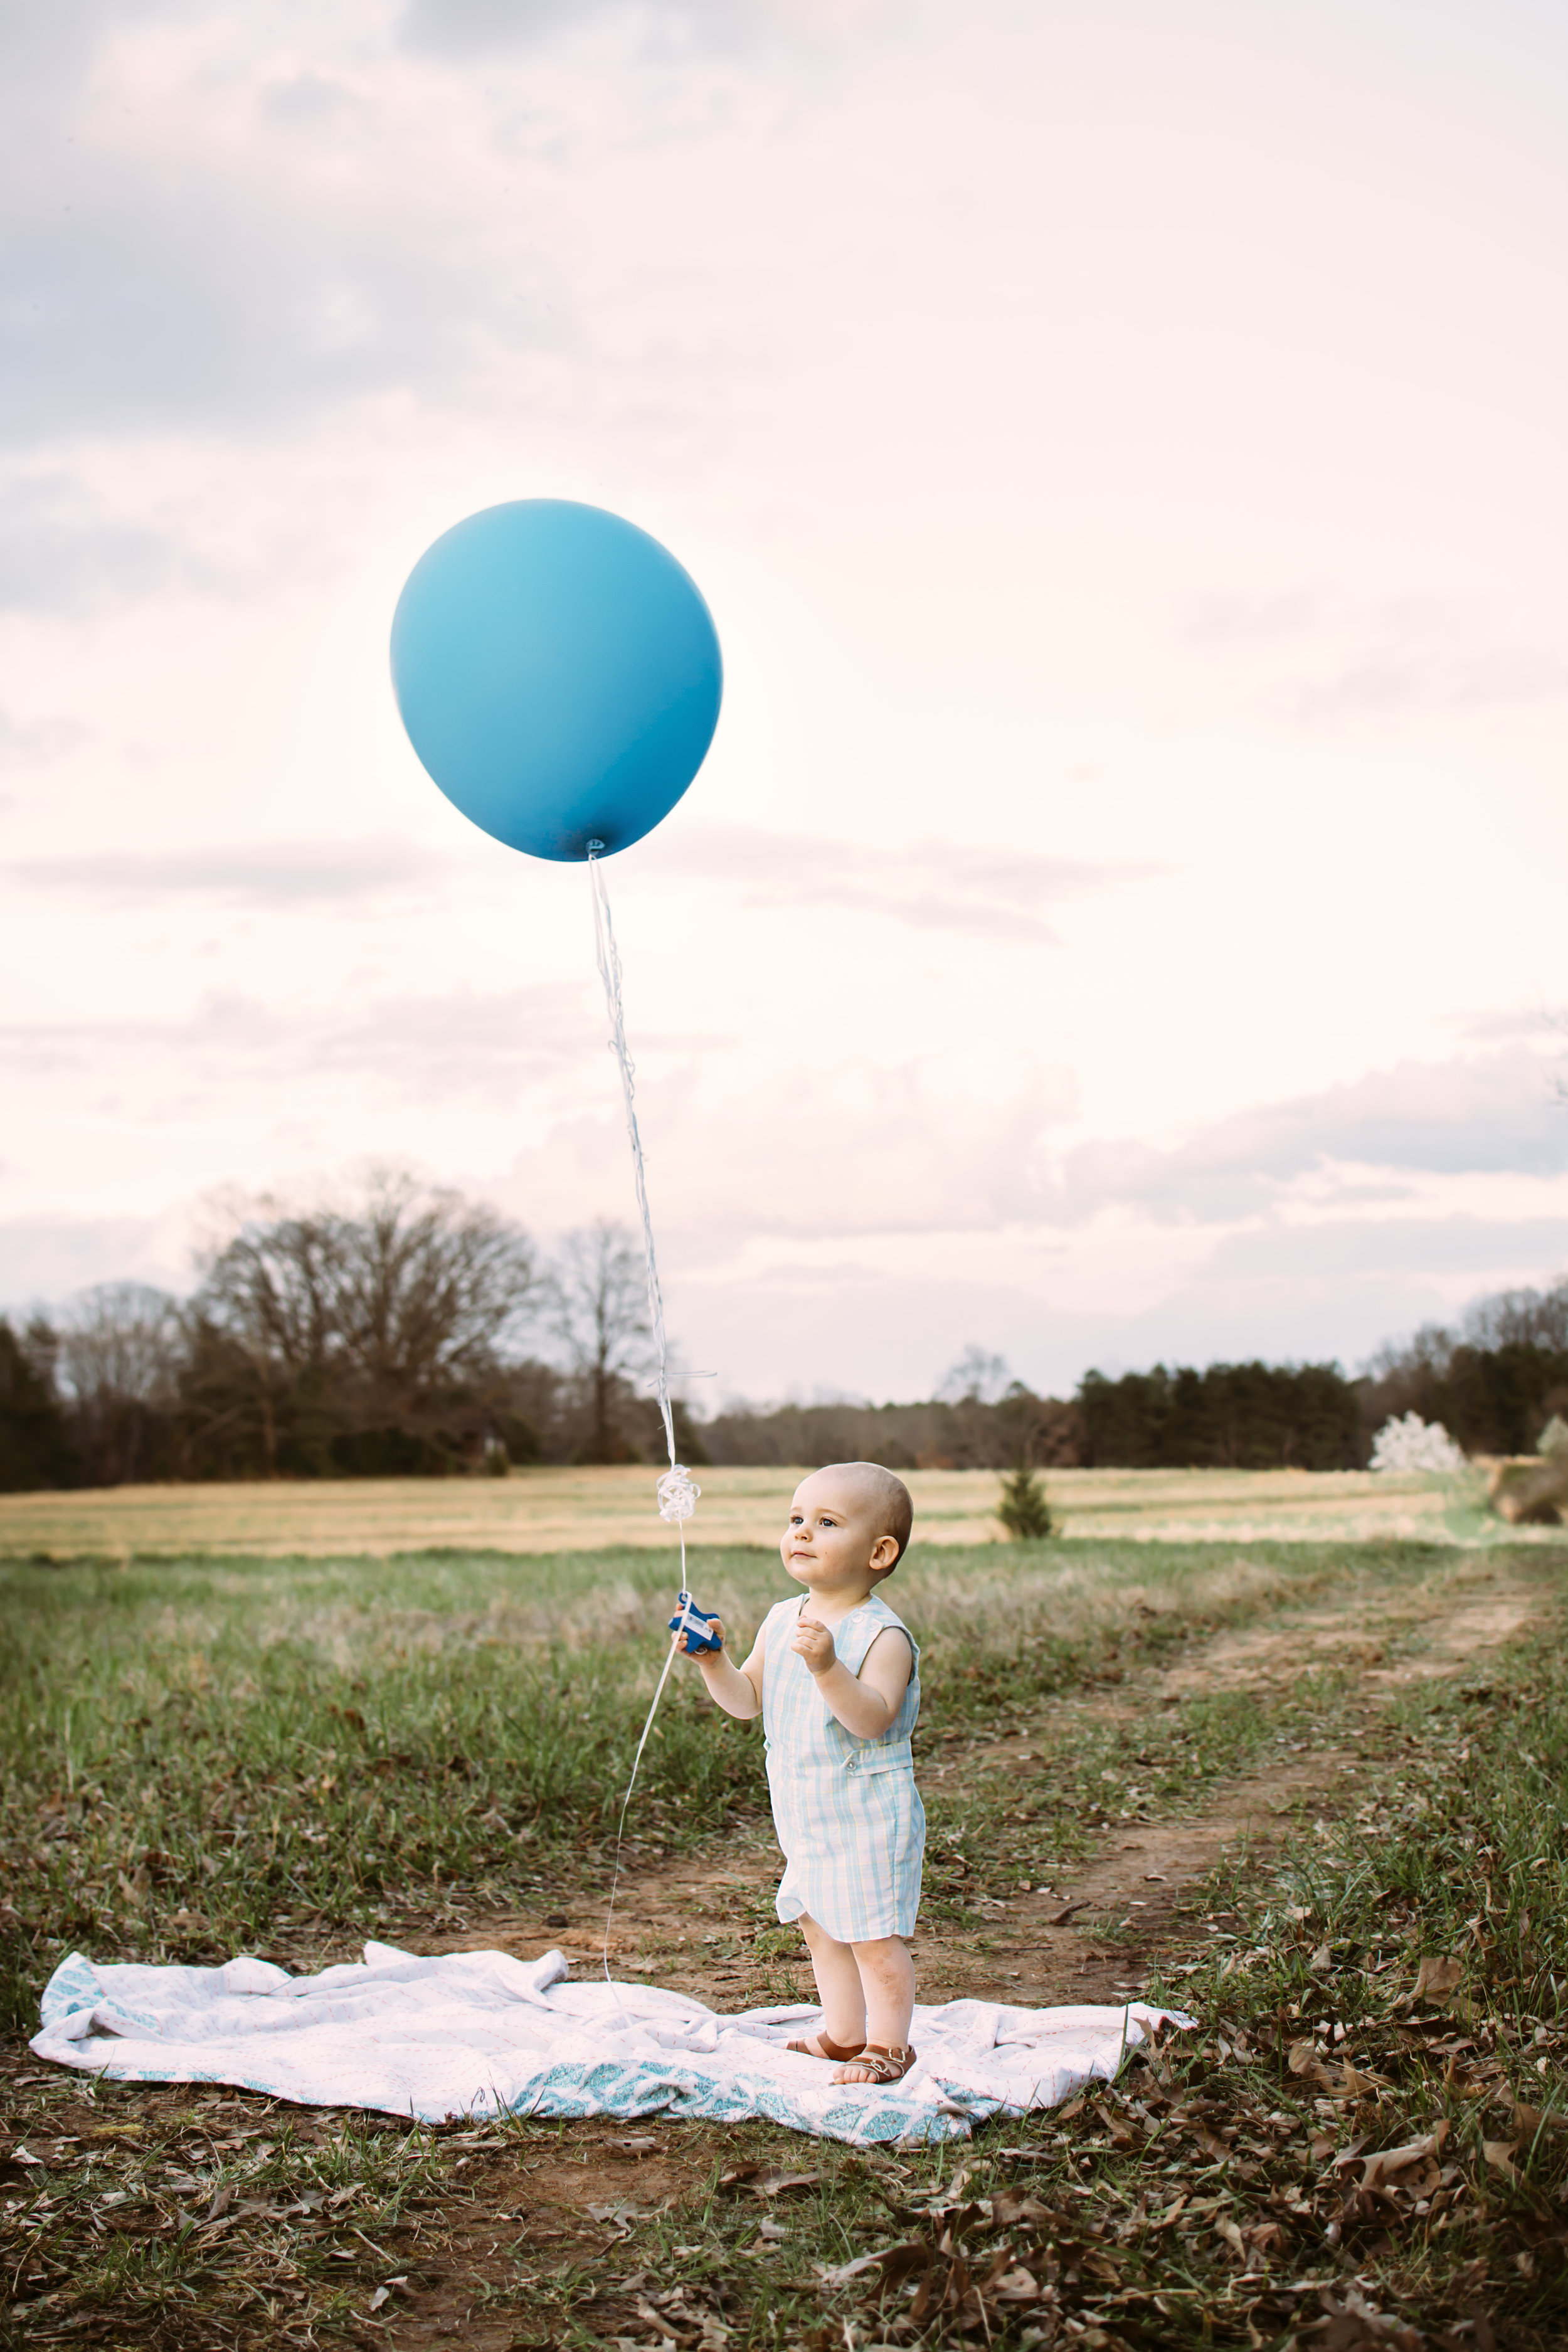 Baby holding large balloon